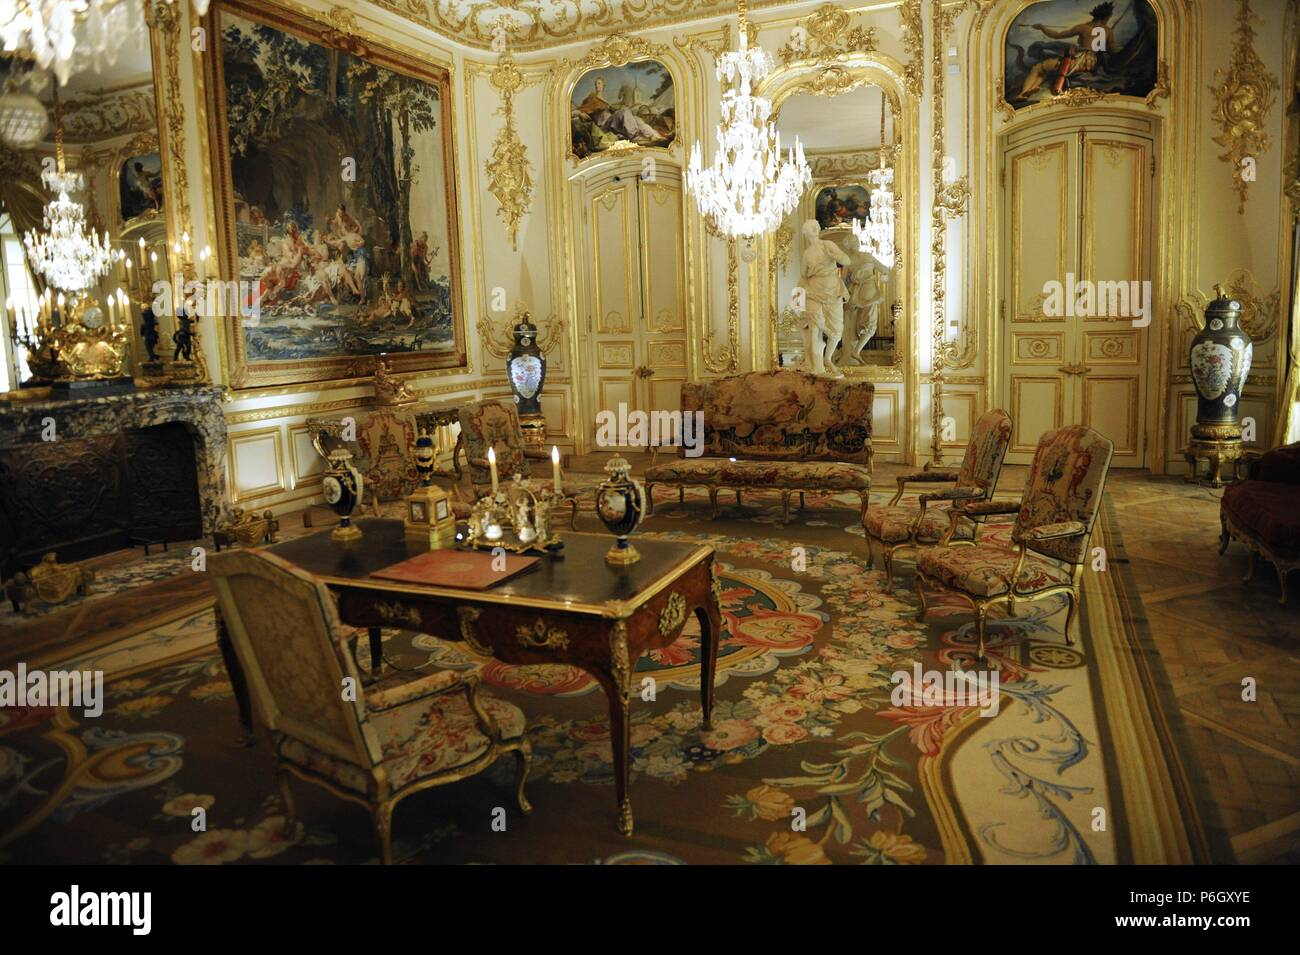 Interior eighteenth century venetian room decoration and furniture jerusalem